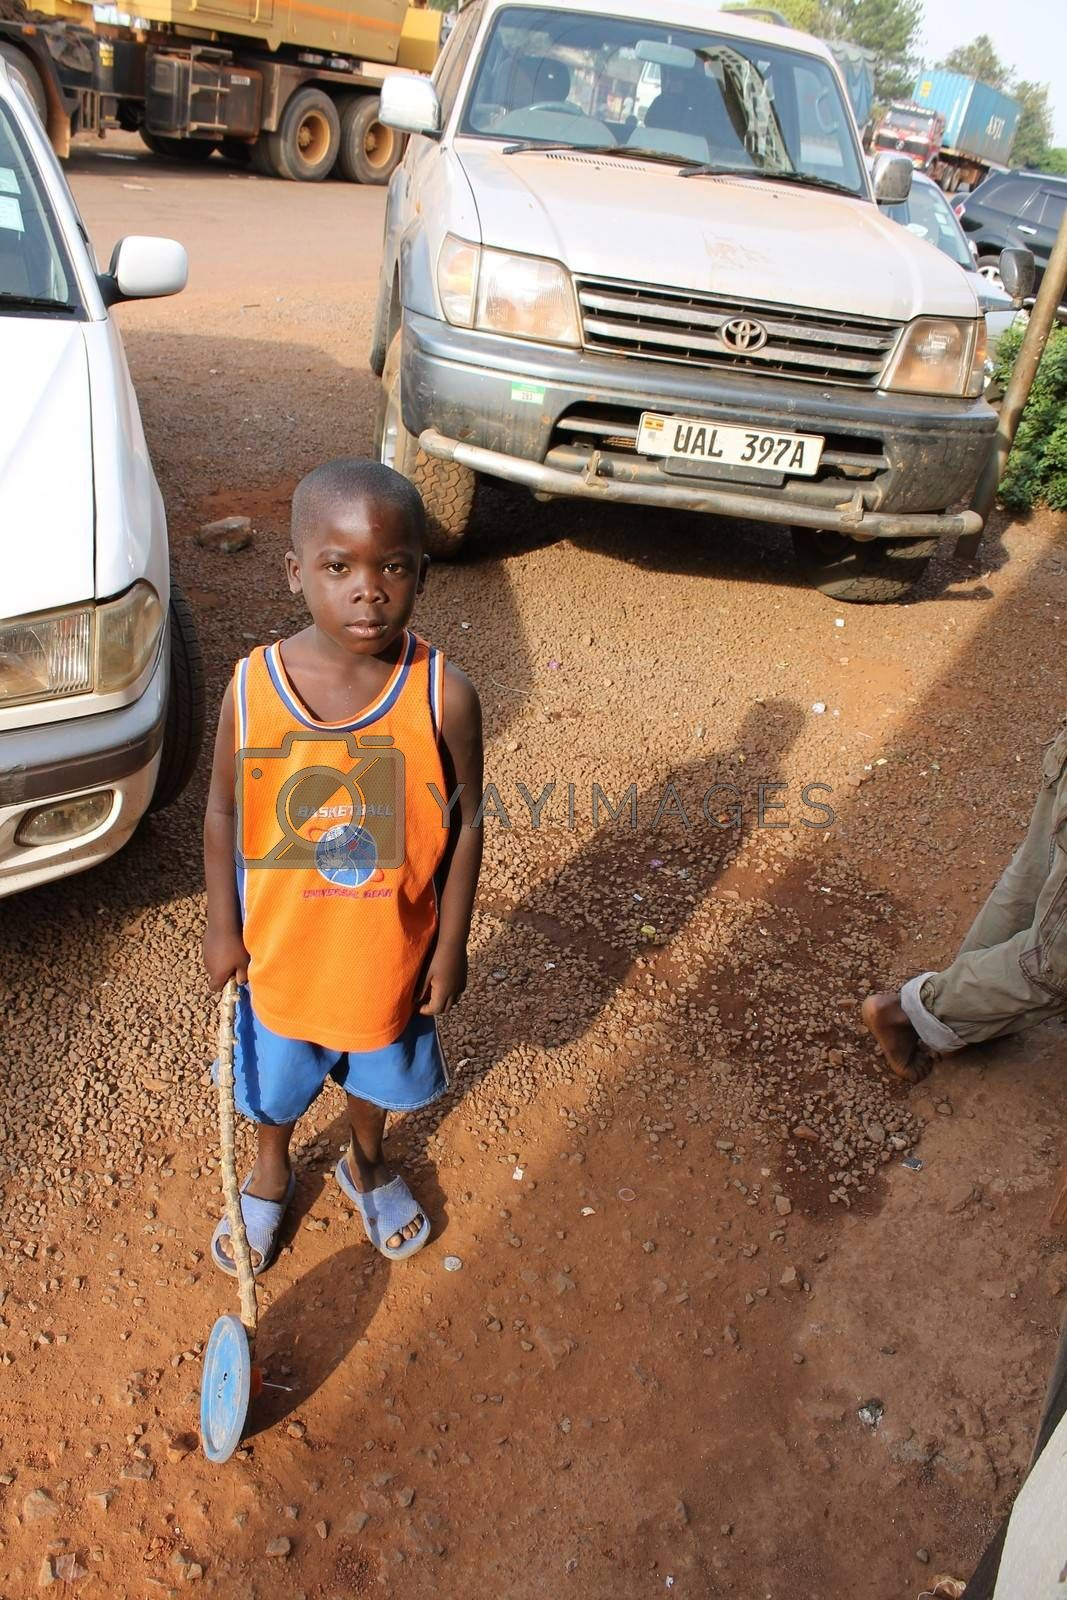 Uganda - 4 March: the Ugandan boy stands on the background of the car and looks at the photographer 4 March 2012 in Uganda.